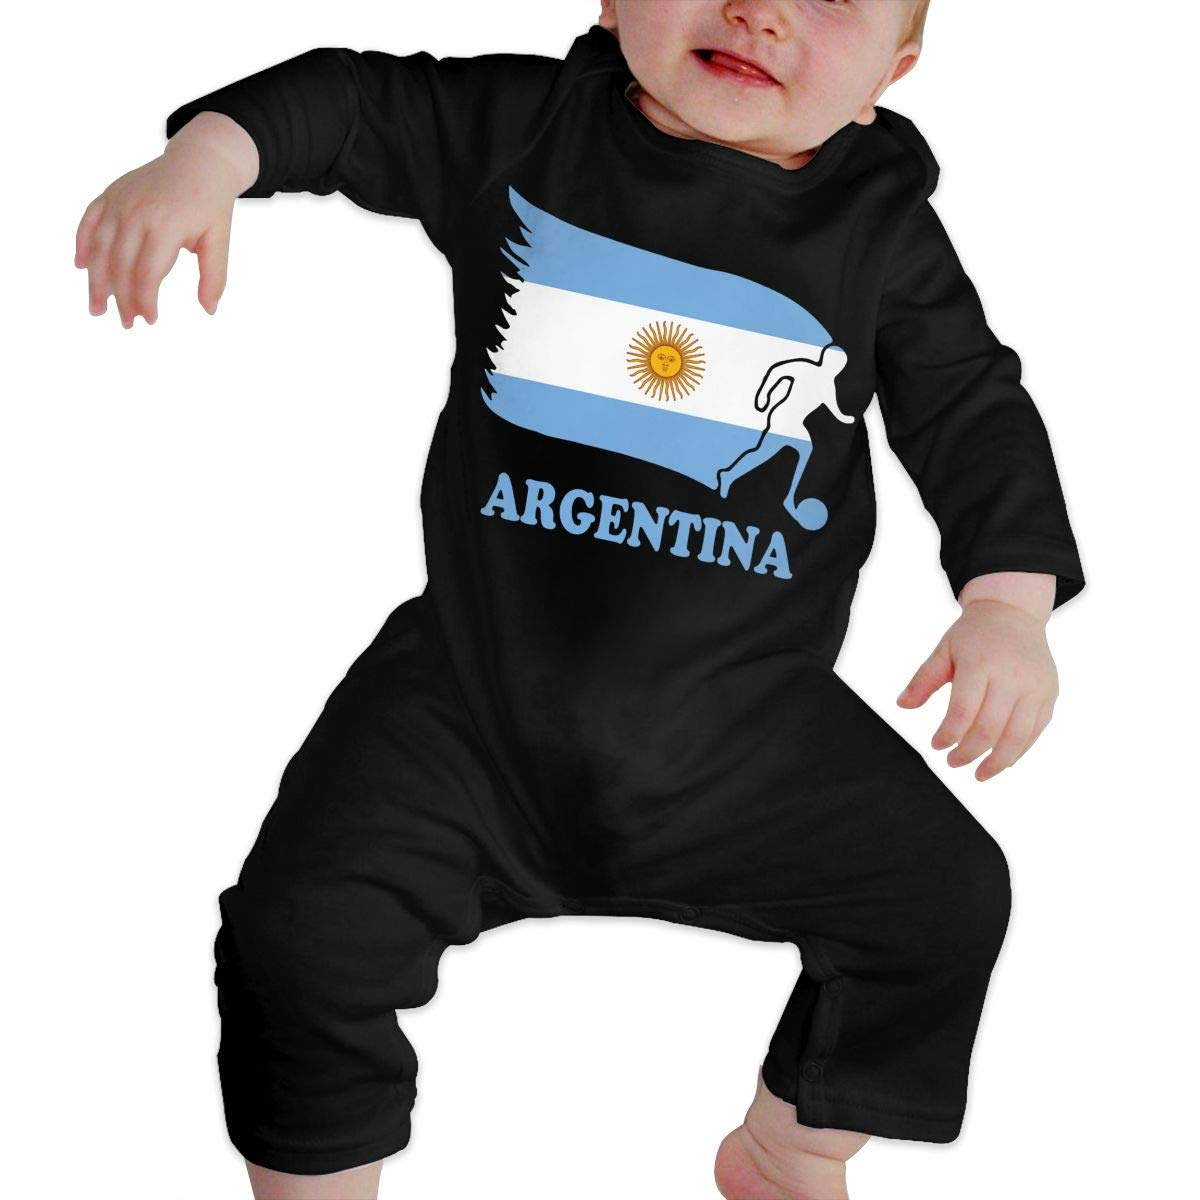 U99oi-9 Long Sleeve Cotton Rompers for Unisex Baby Soft Argentina Football Soccer Flag Sleepwear